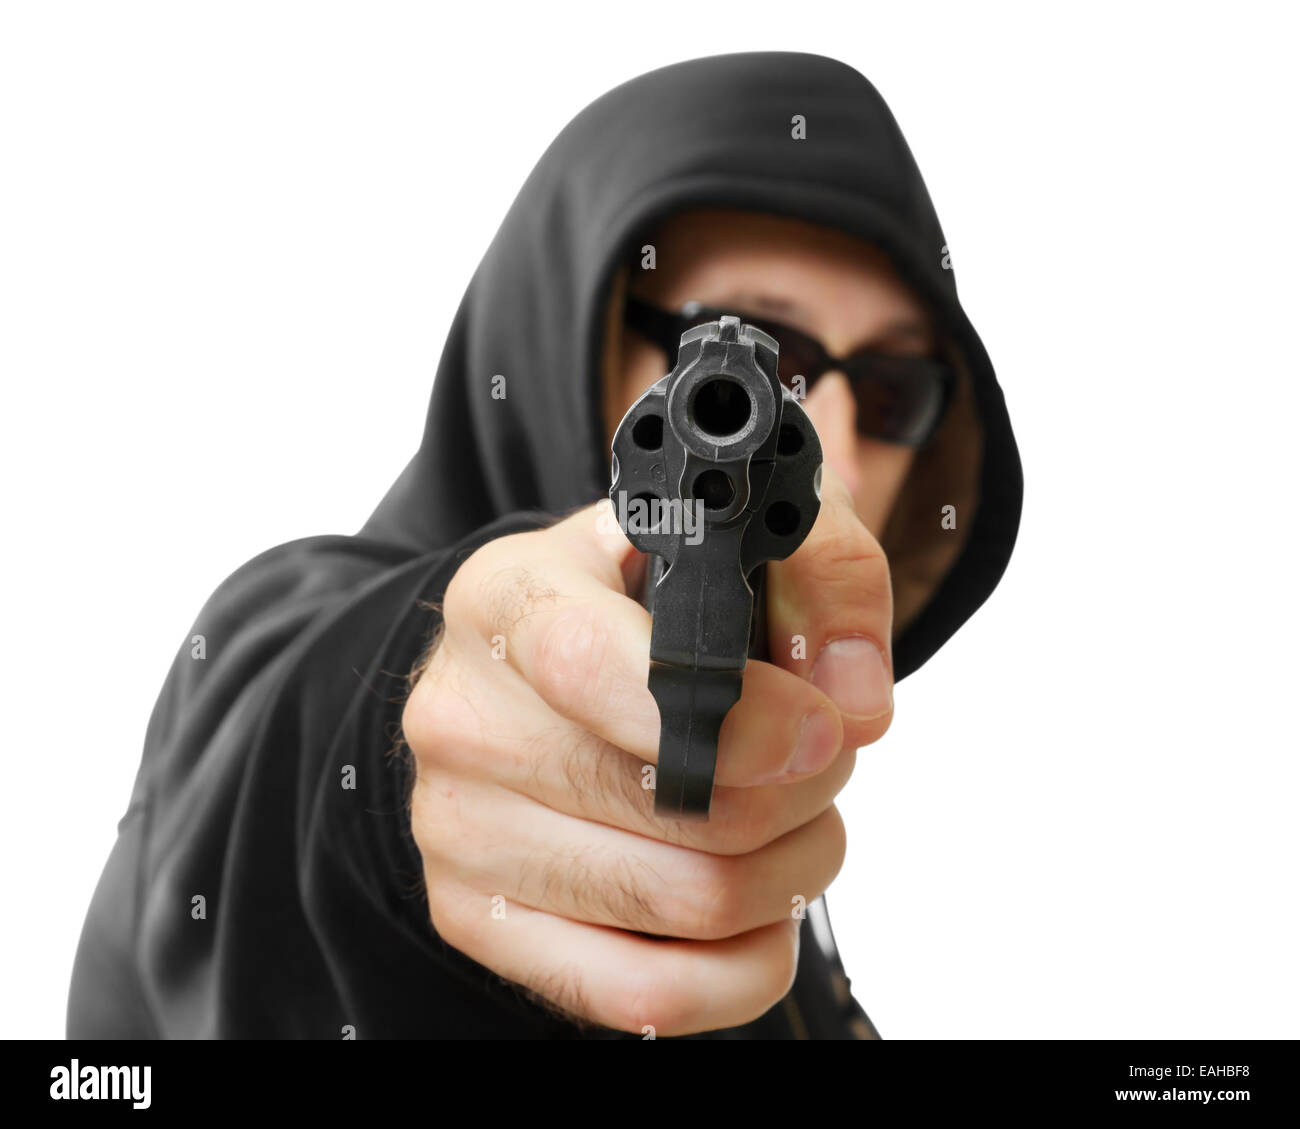 man  shoots a gun, gangster, focus on the gun, isolated on white - Stock Image